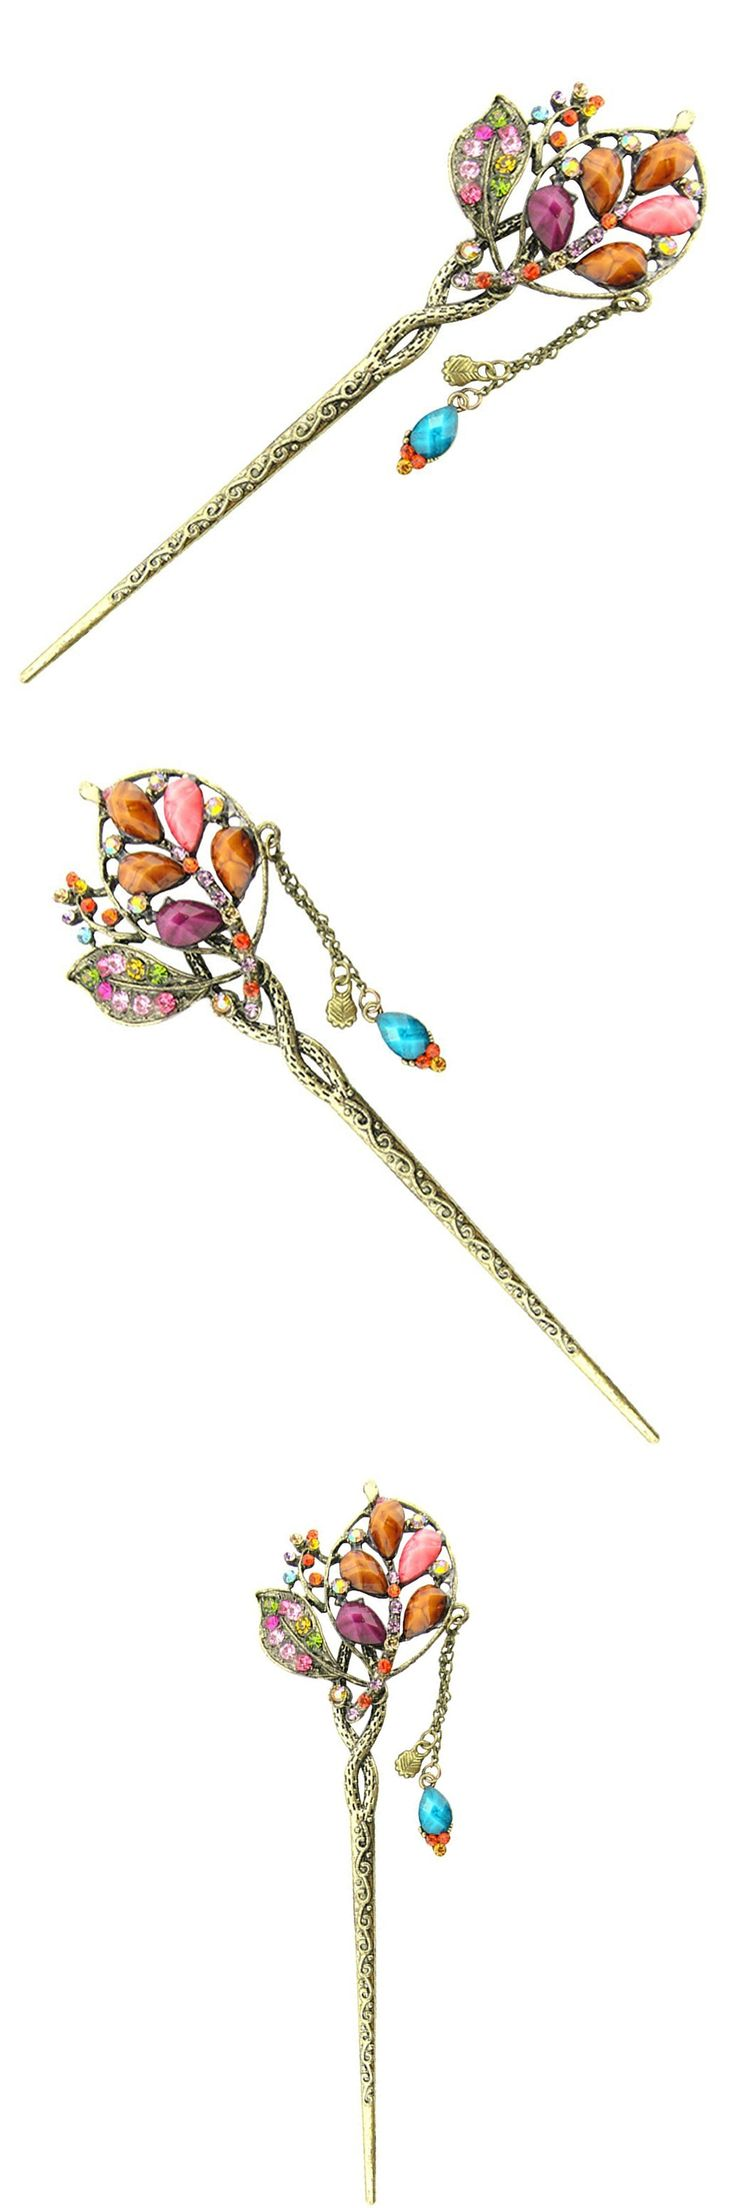 HTHL-Retro Hair Clip / hairpin / Barrette With Fringe in Peacock Form for Woman, rainbow color